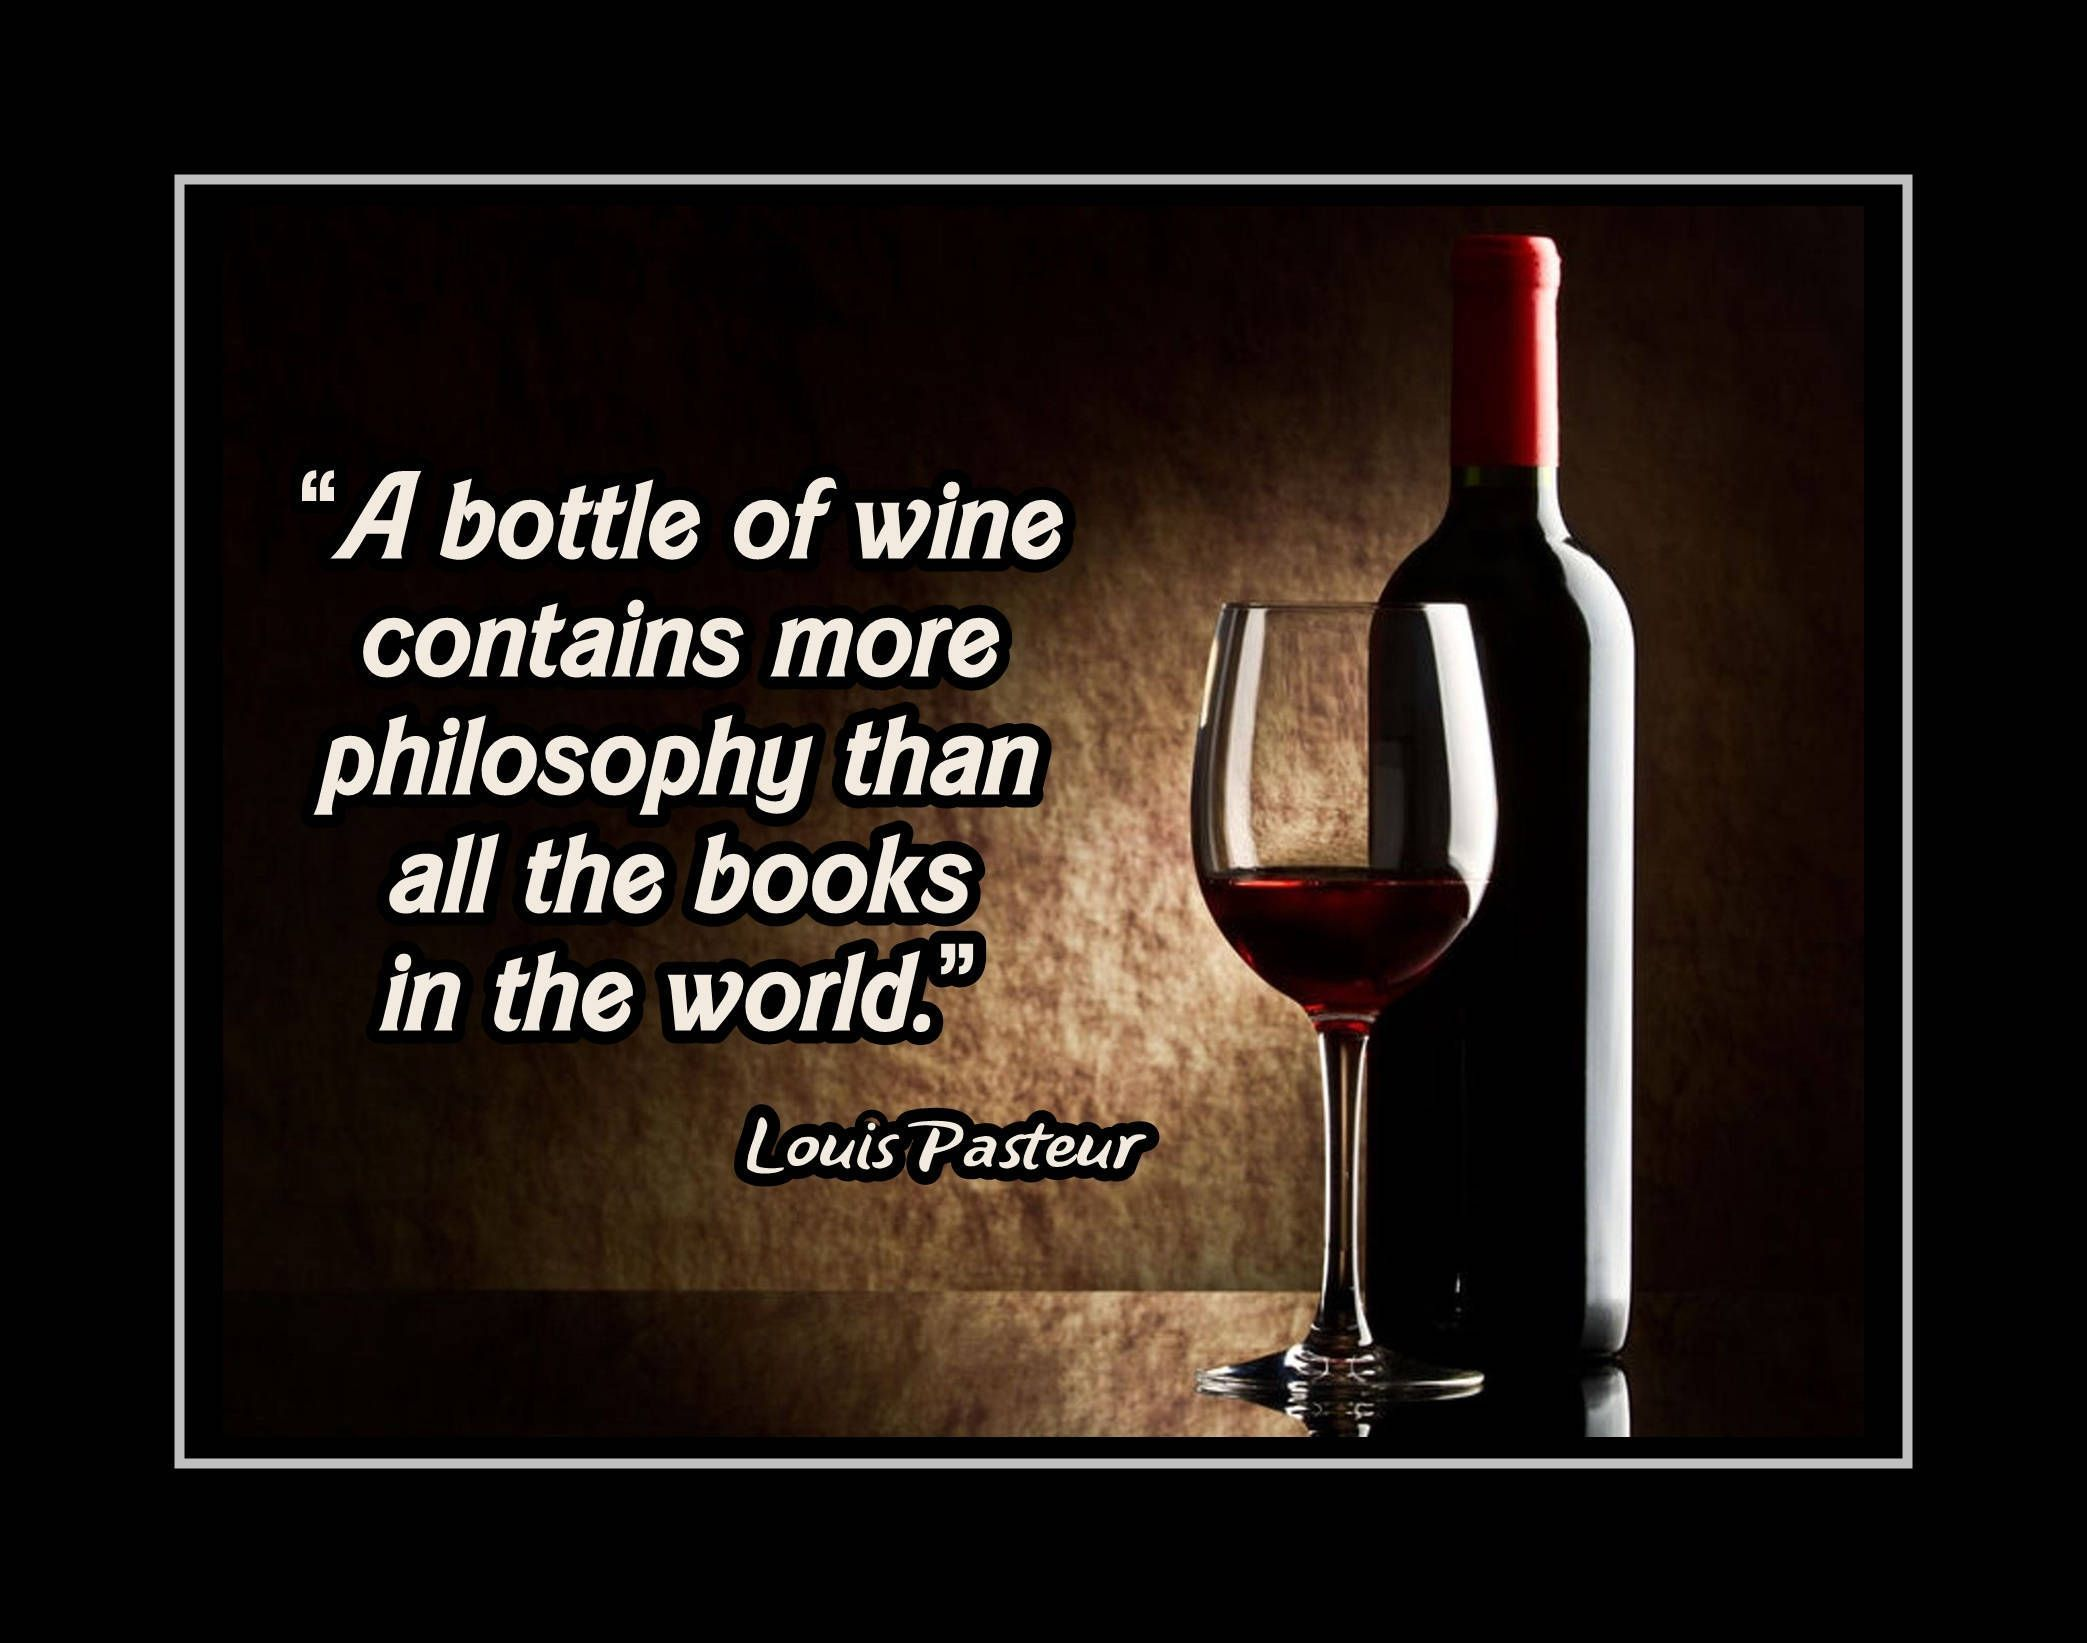 Wine Philosophy Quote Poster Funny But True Wall Art Kitchen Bar Drinking Humor Wall Decor Louis Pasteur 8x10 Wine Quotes Funny Wine Bottles Quote Posters